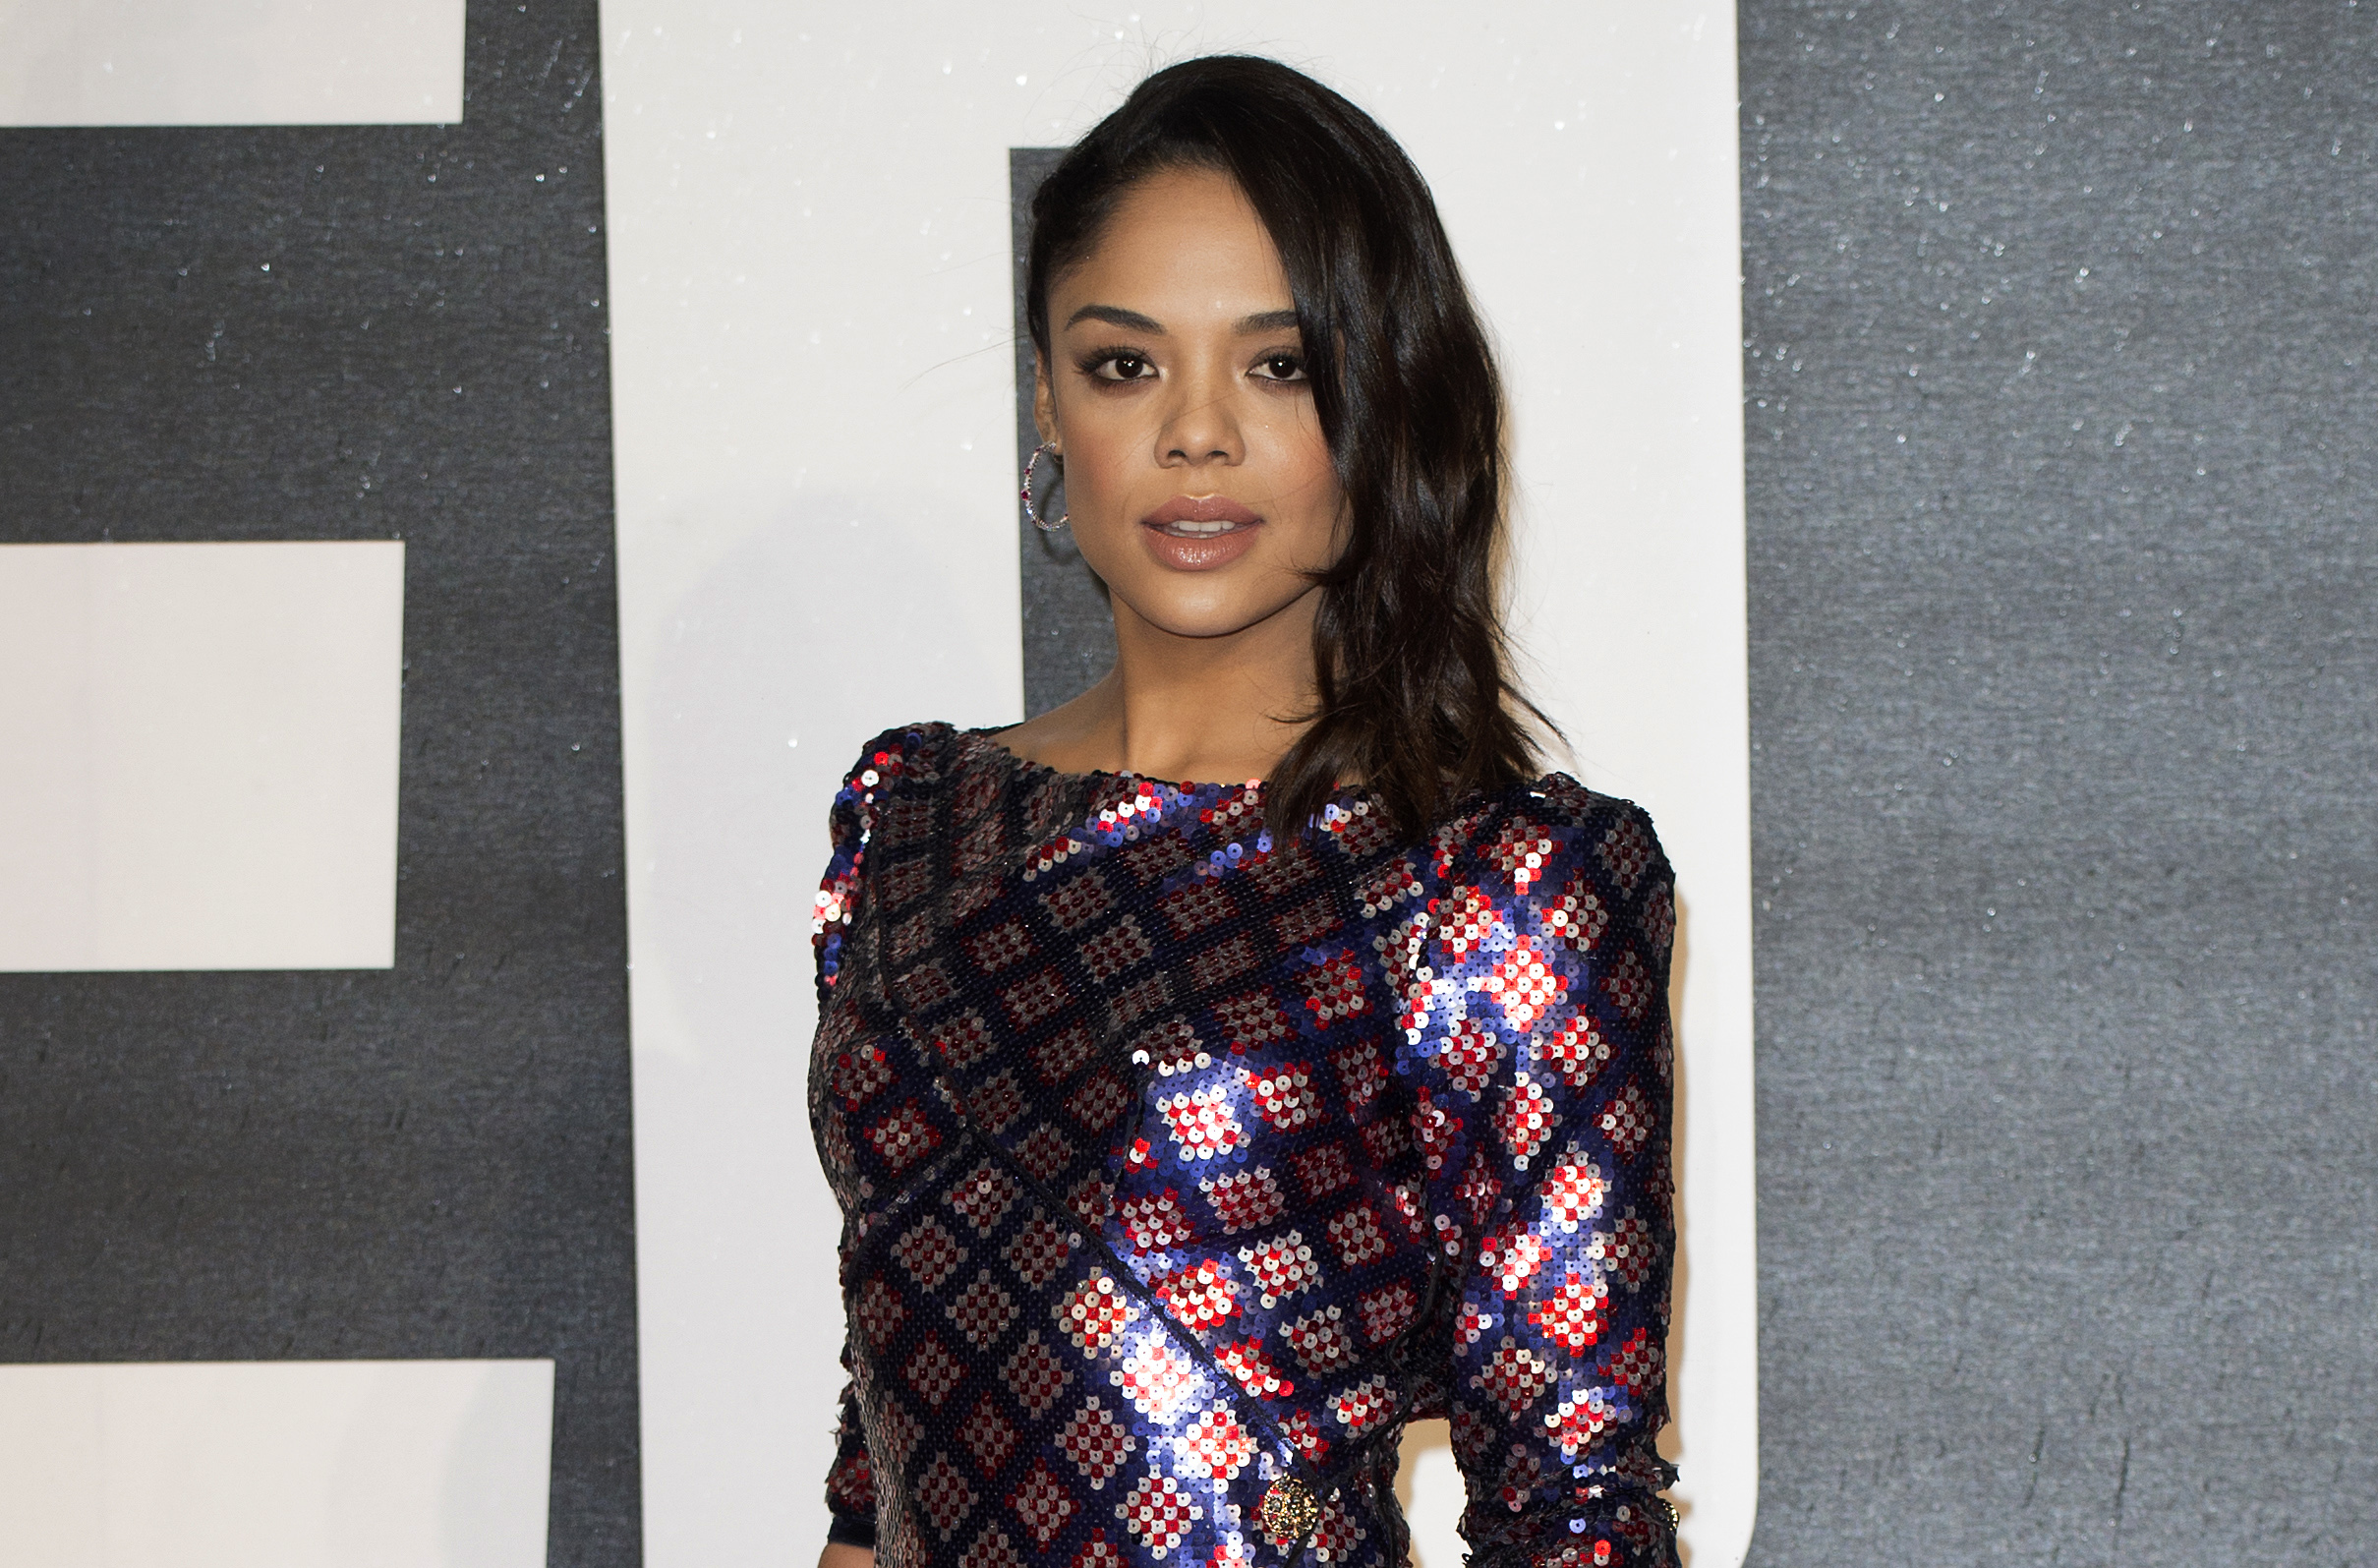 Creed's Tessa Thompson reveals plot details for HBO's Westworld remake